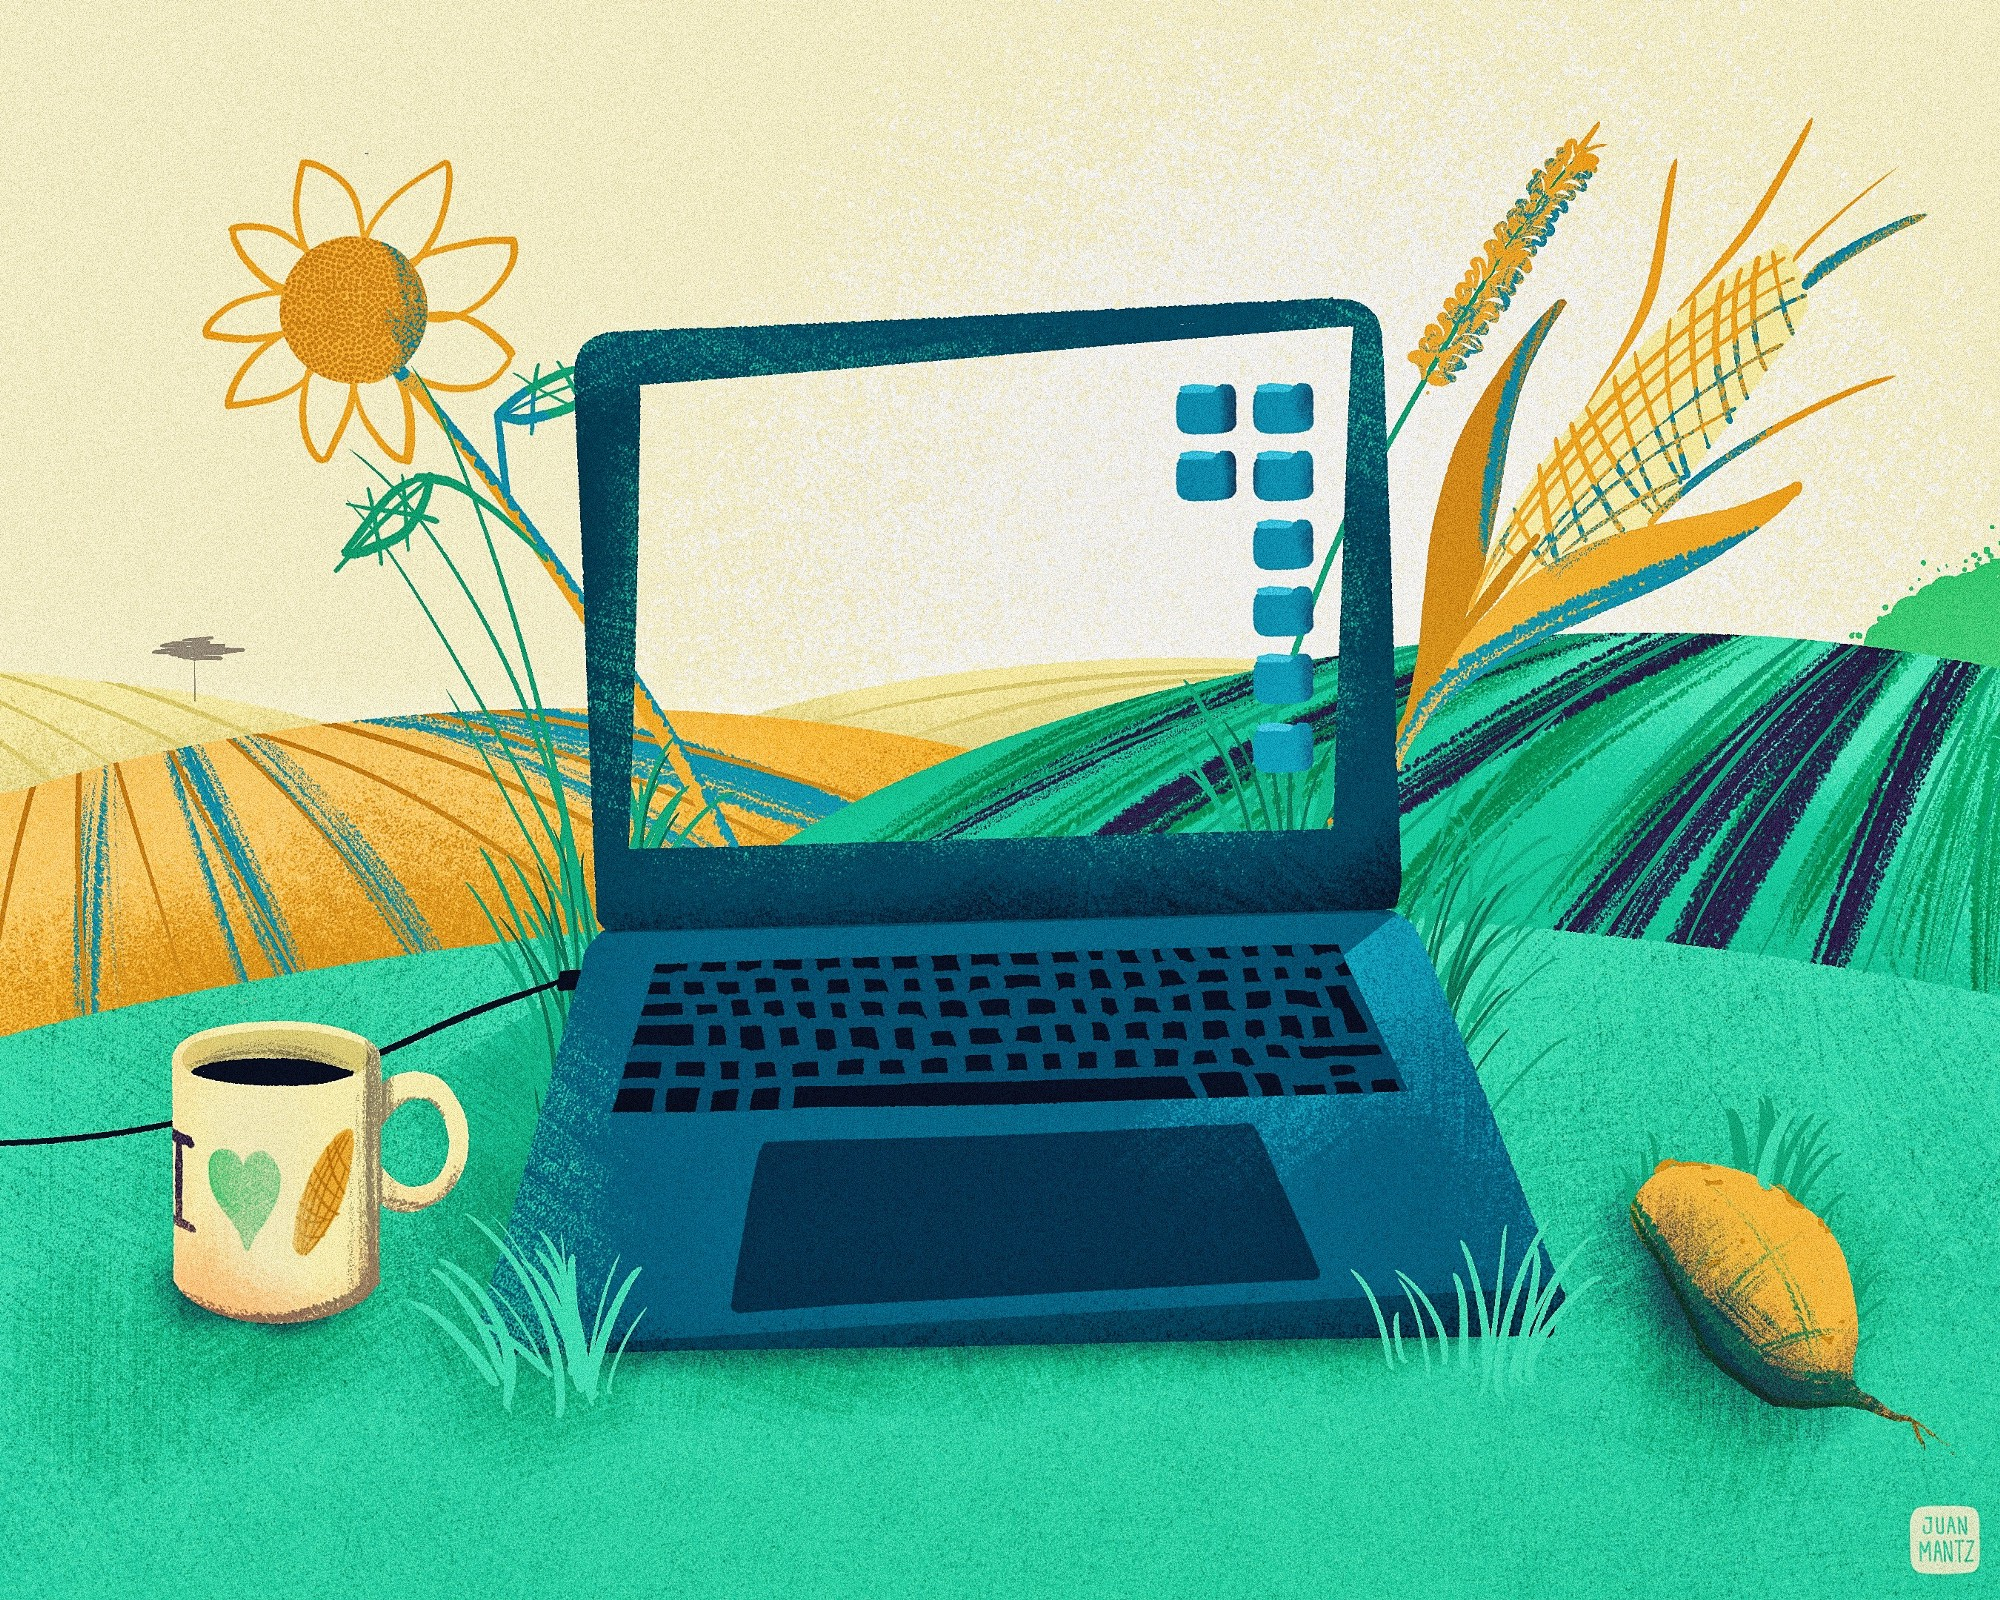 Remote Work, a computer over a field on the country side